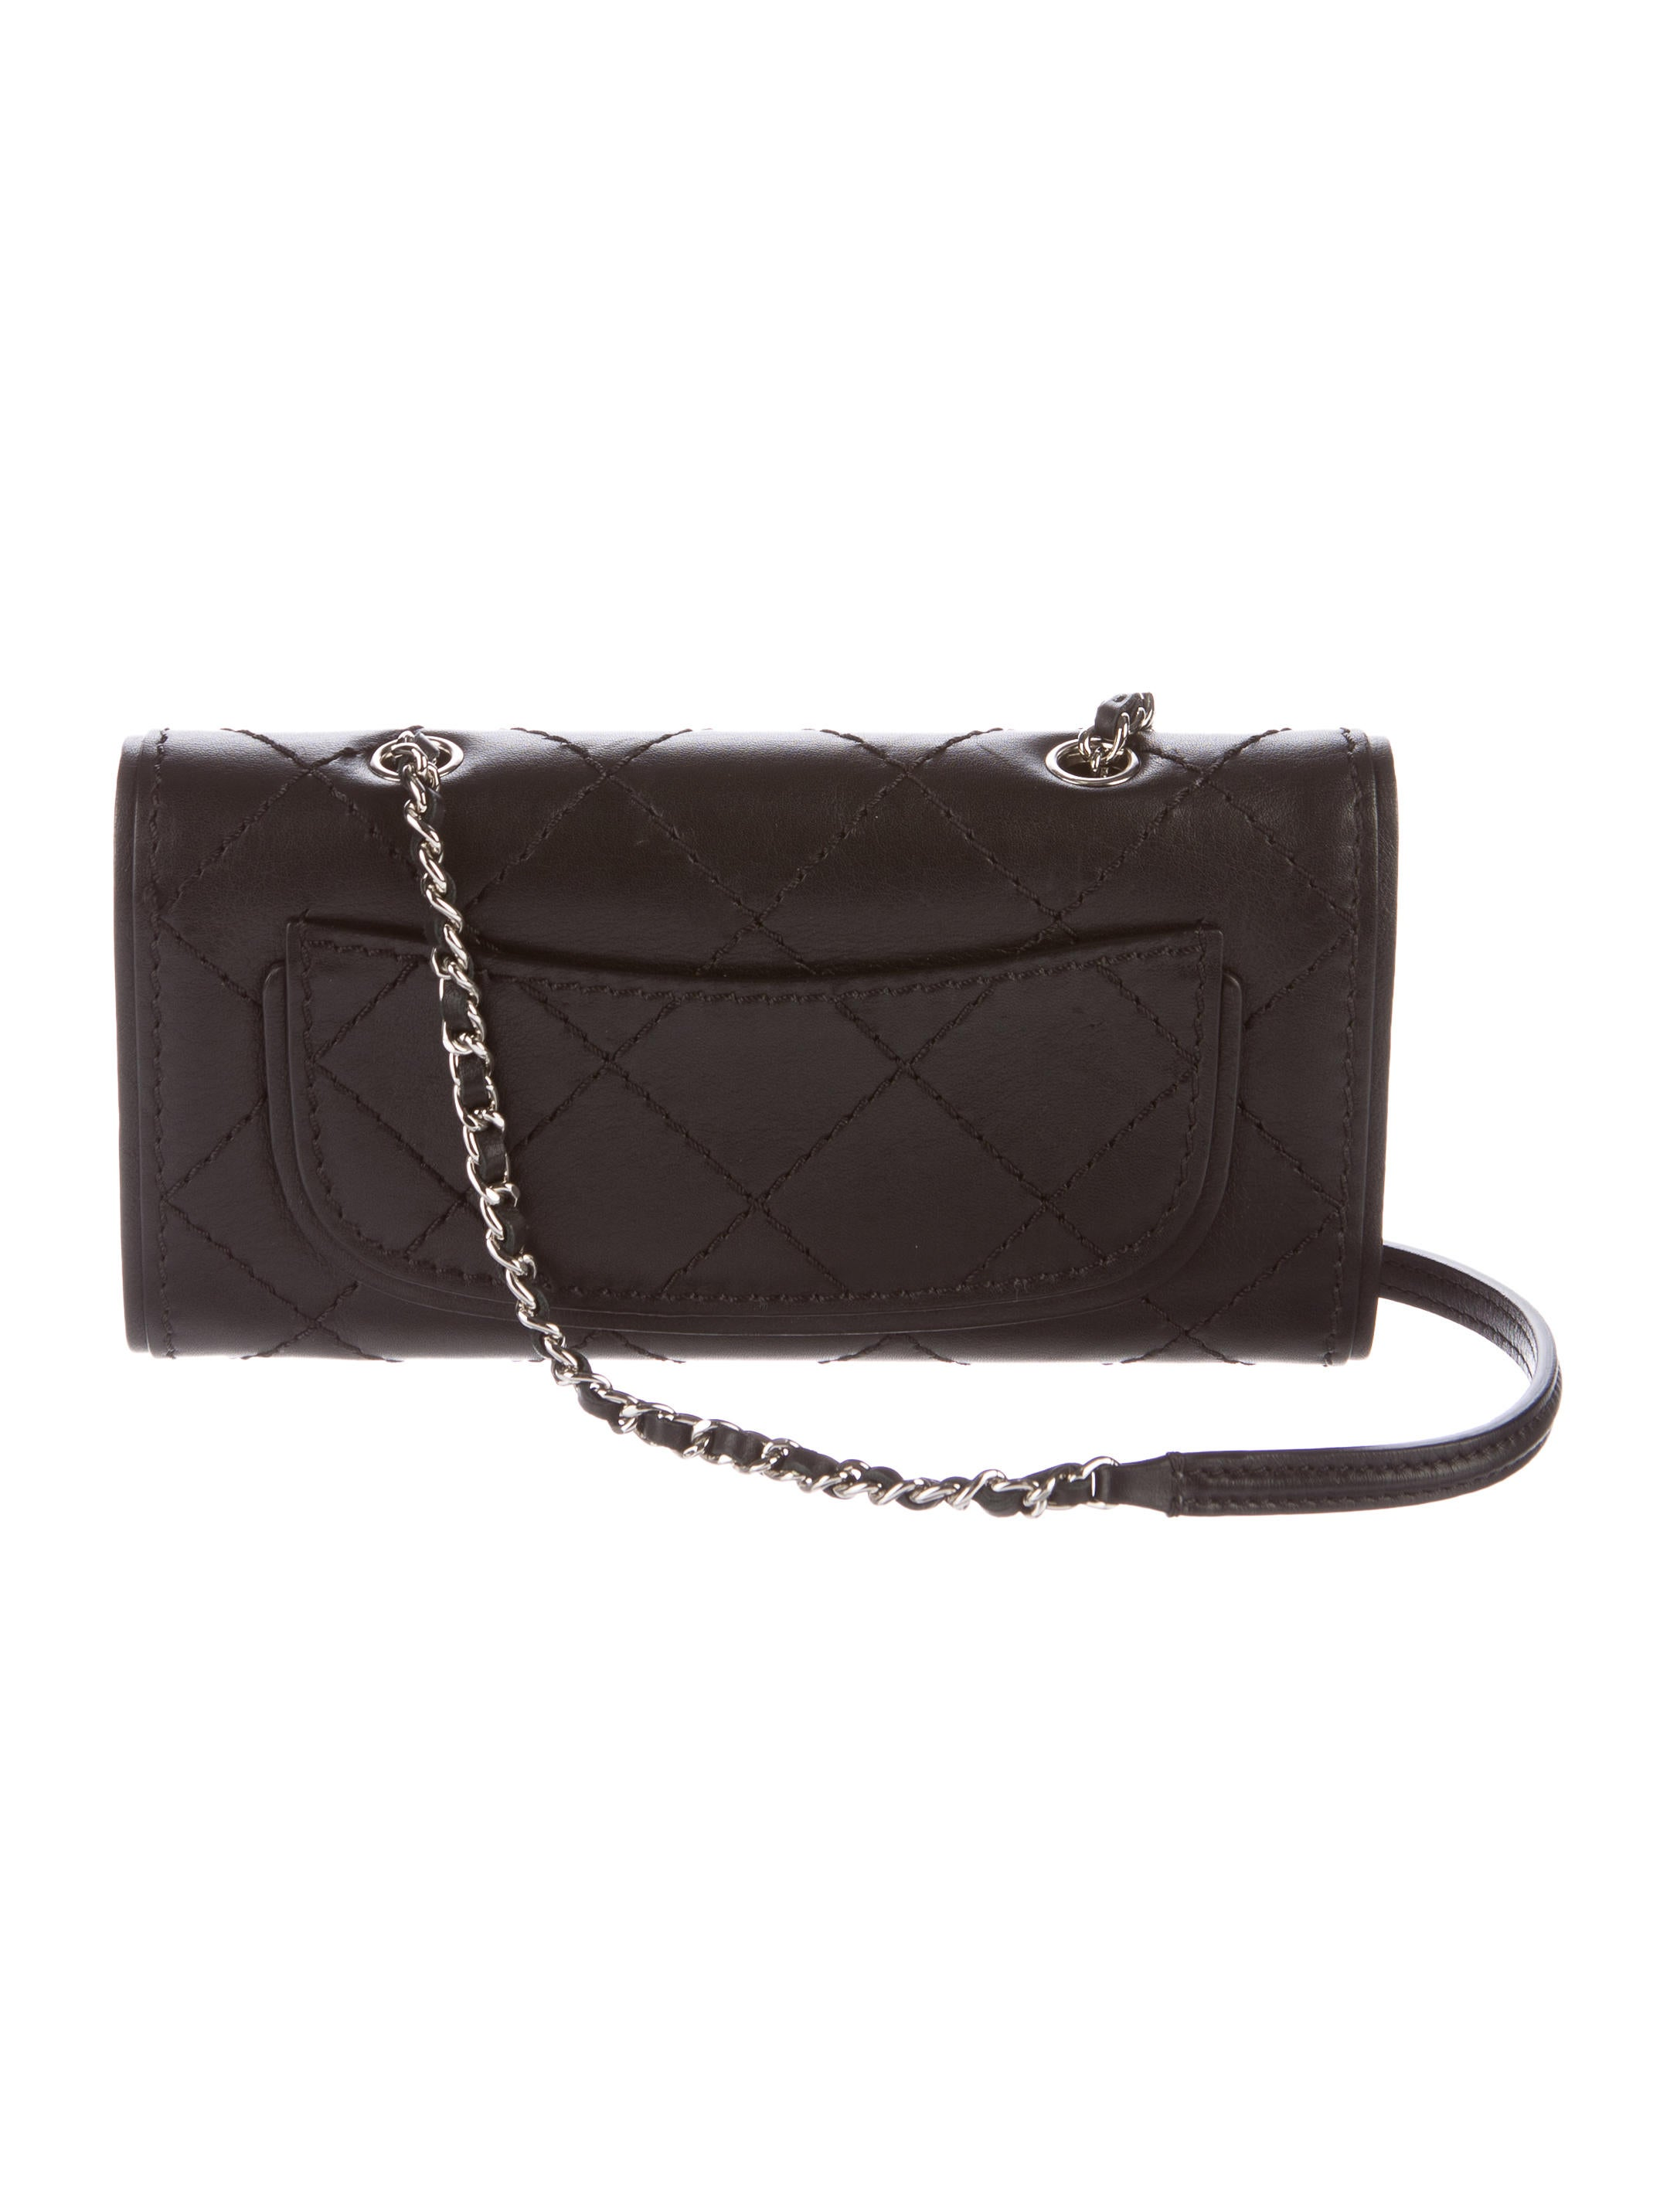 a0c439554255 Chanel Wallet On Chain Straps. Chanel Black Caviar Leather Flap Bag ...